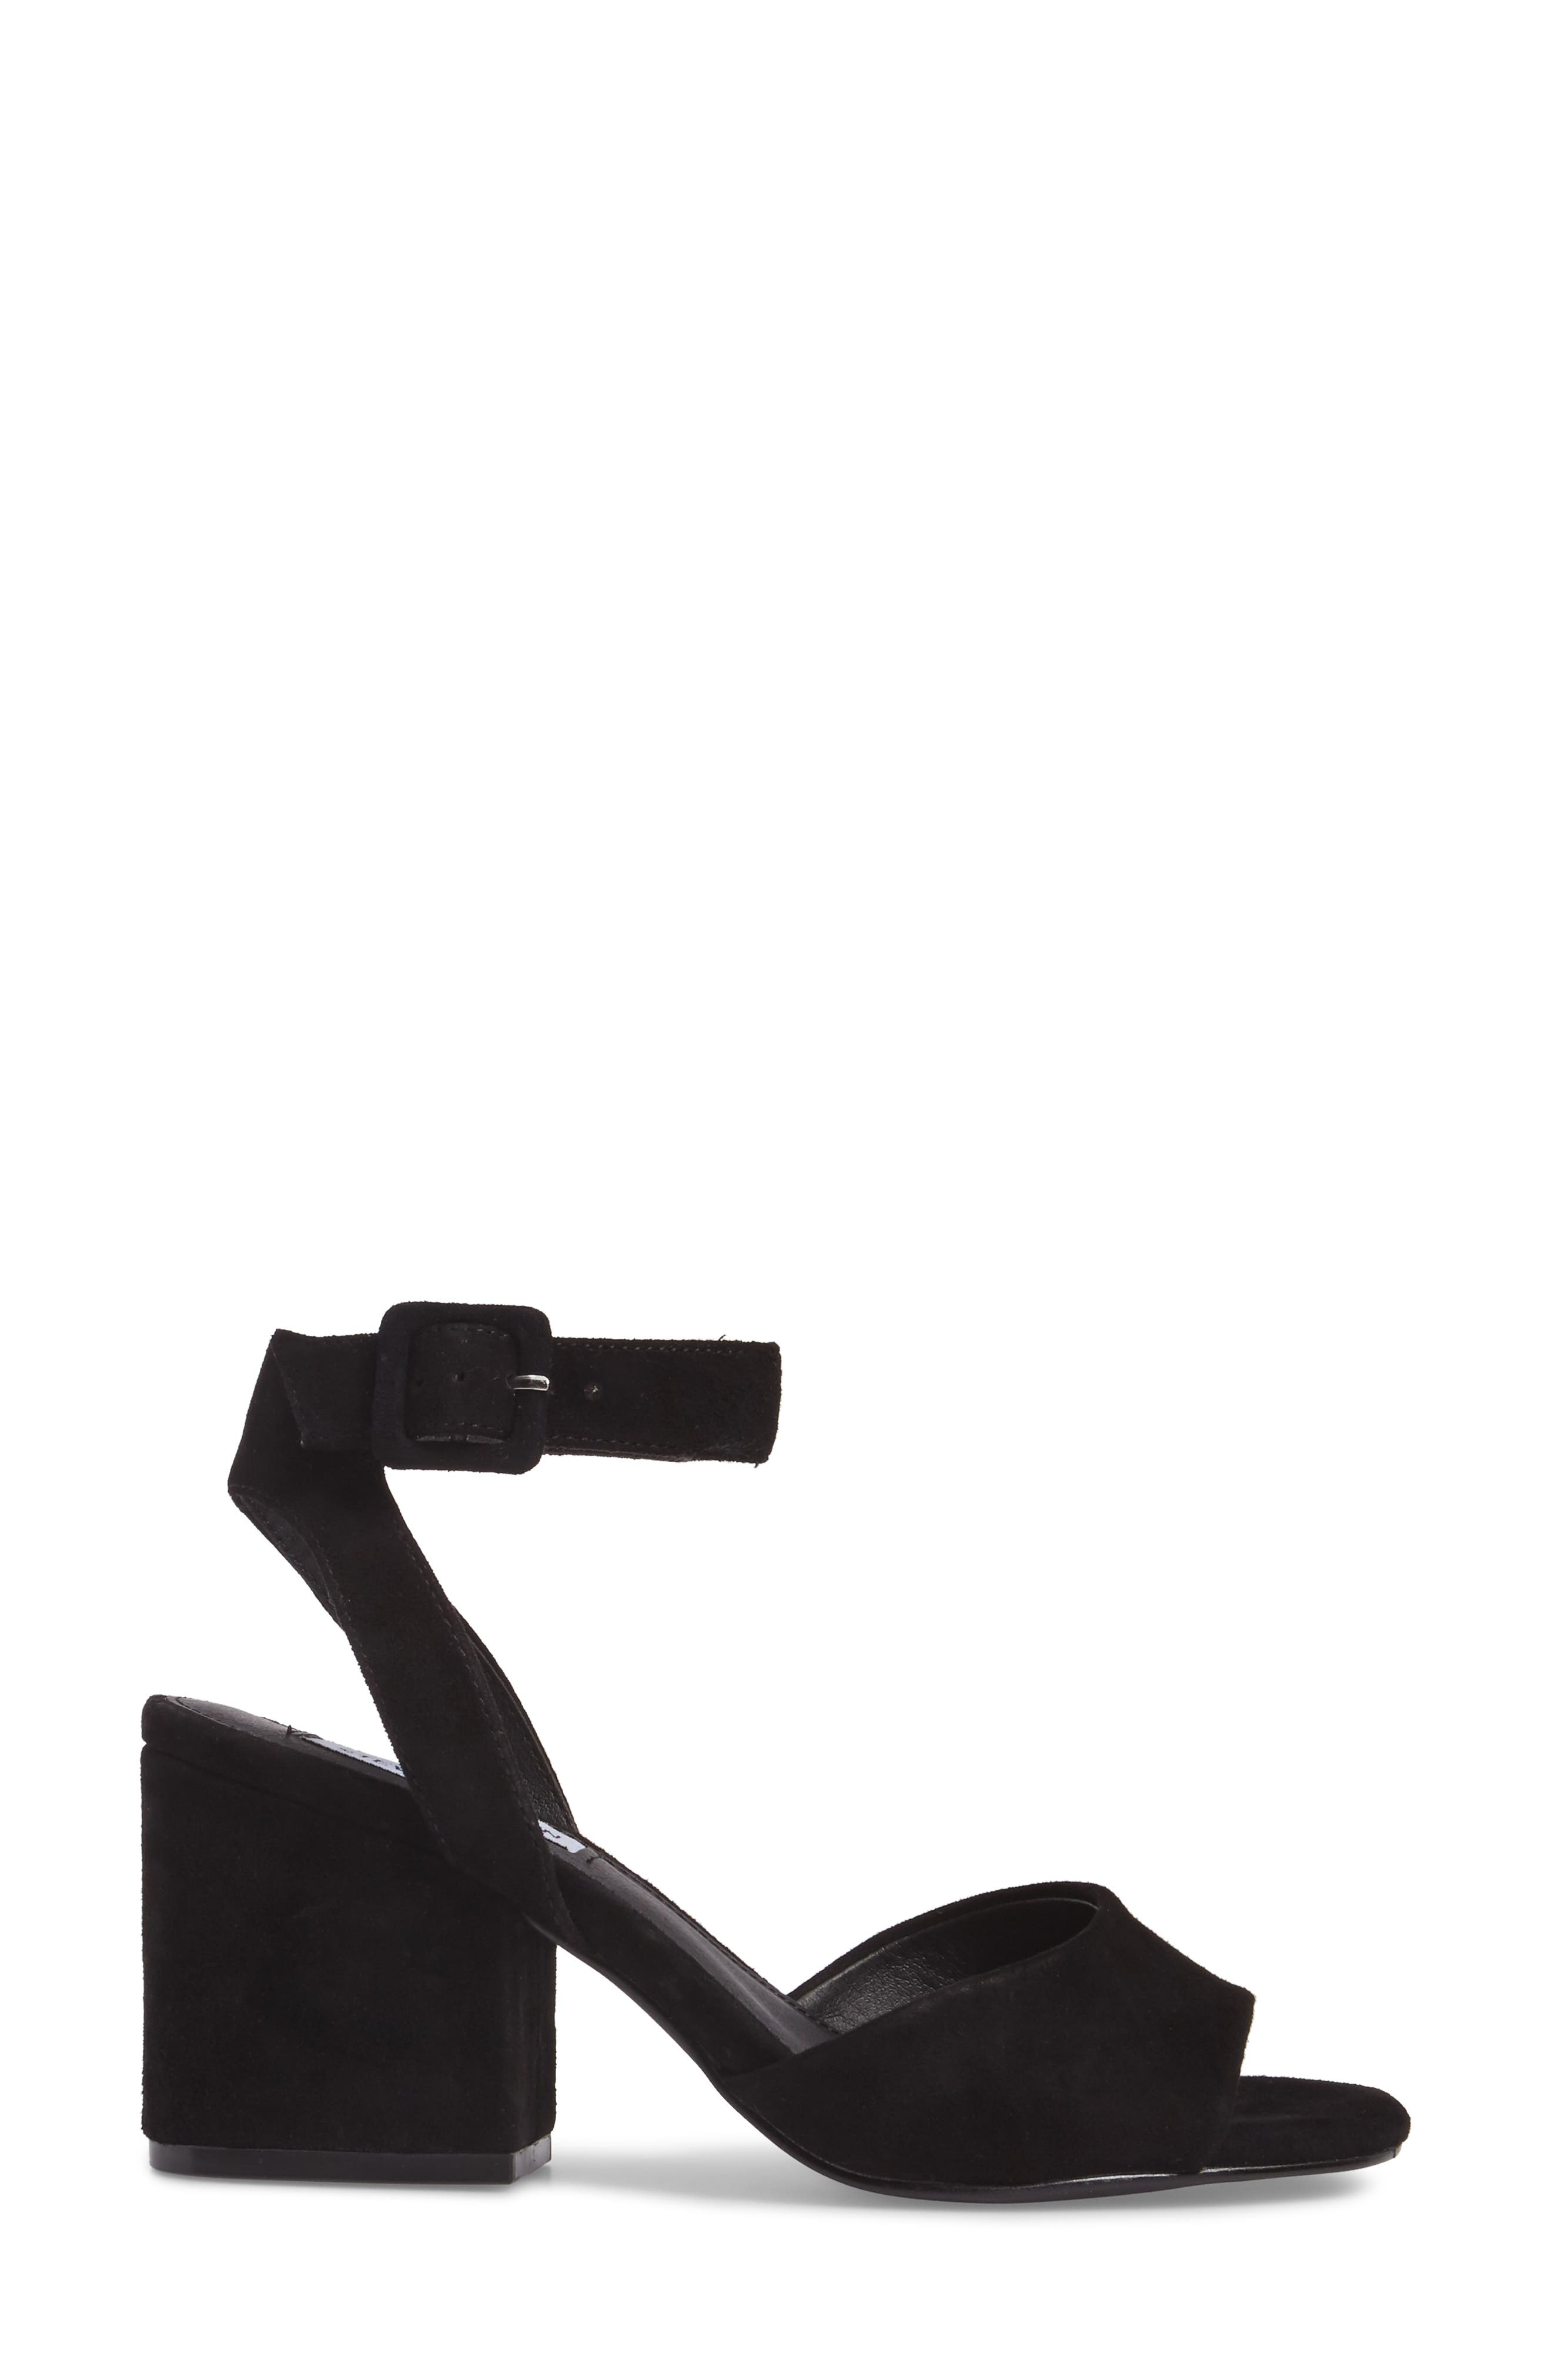 Debbie Sandal,                             Alternate thumbnail 3, color,                             Black Suede